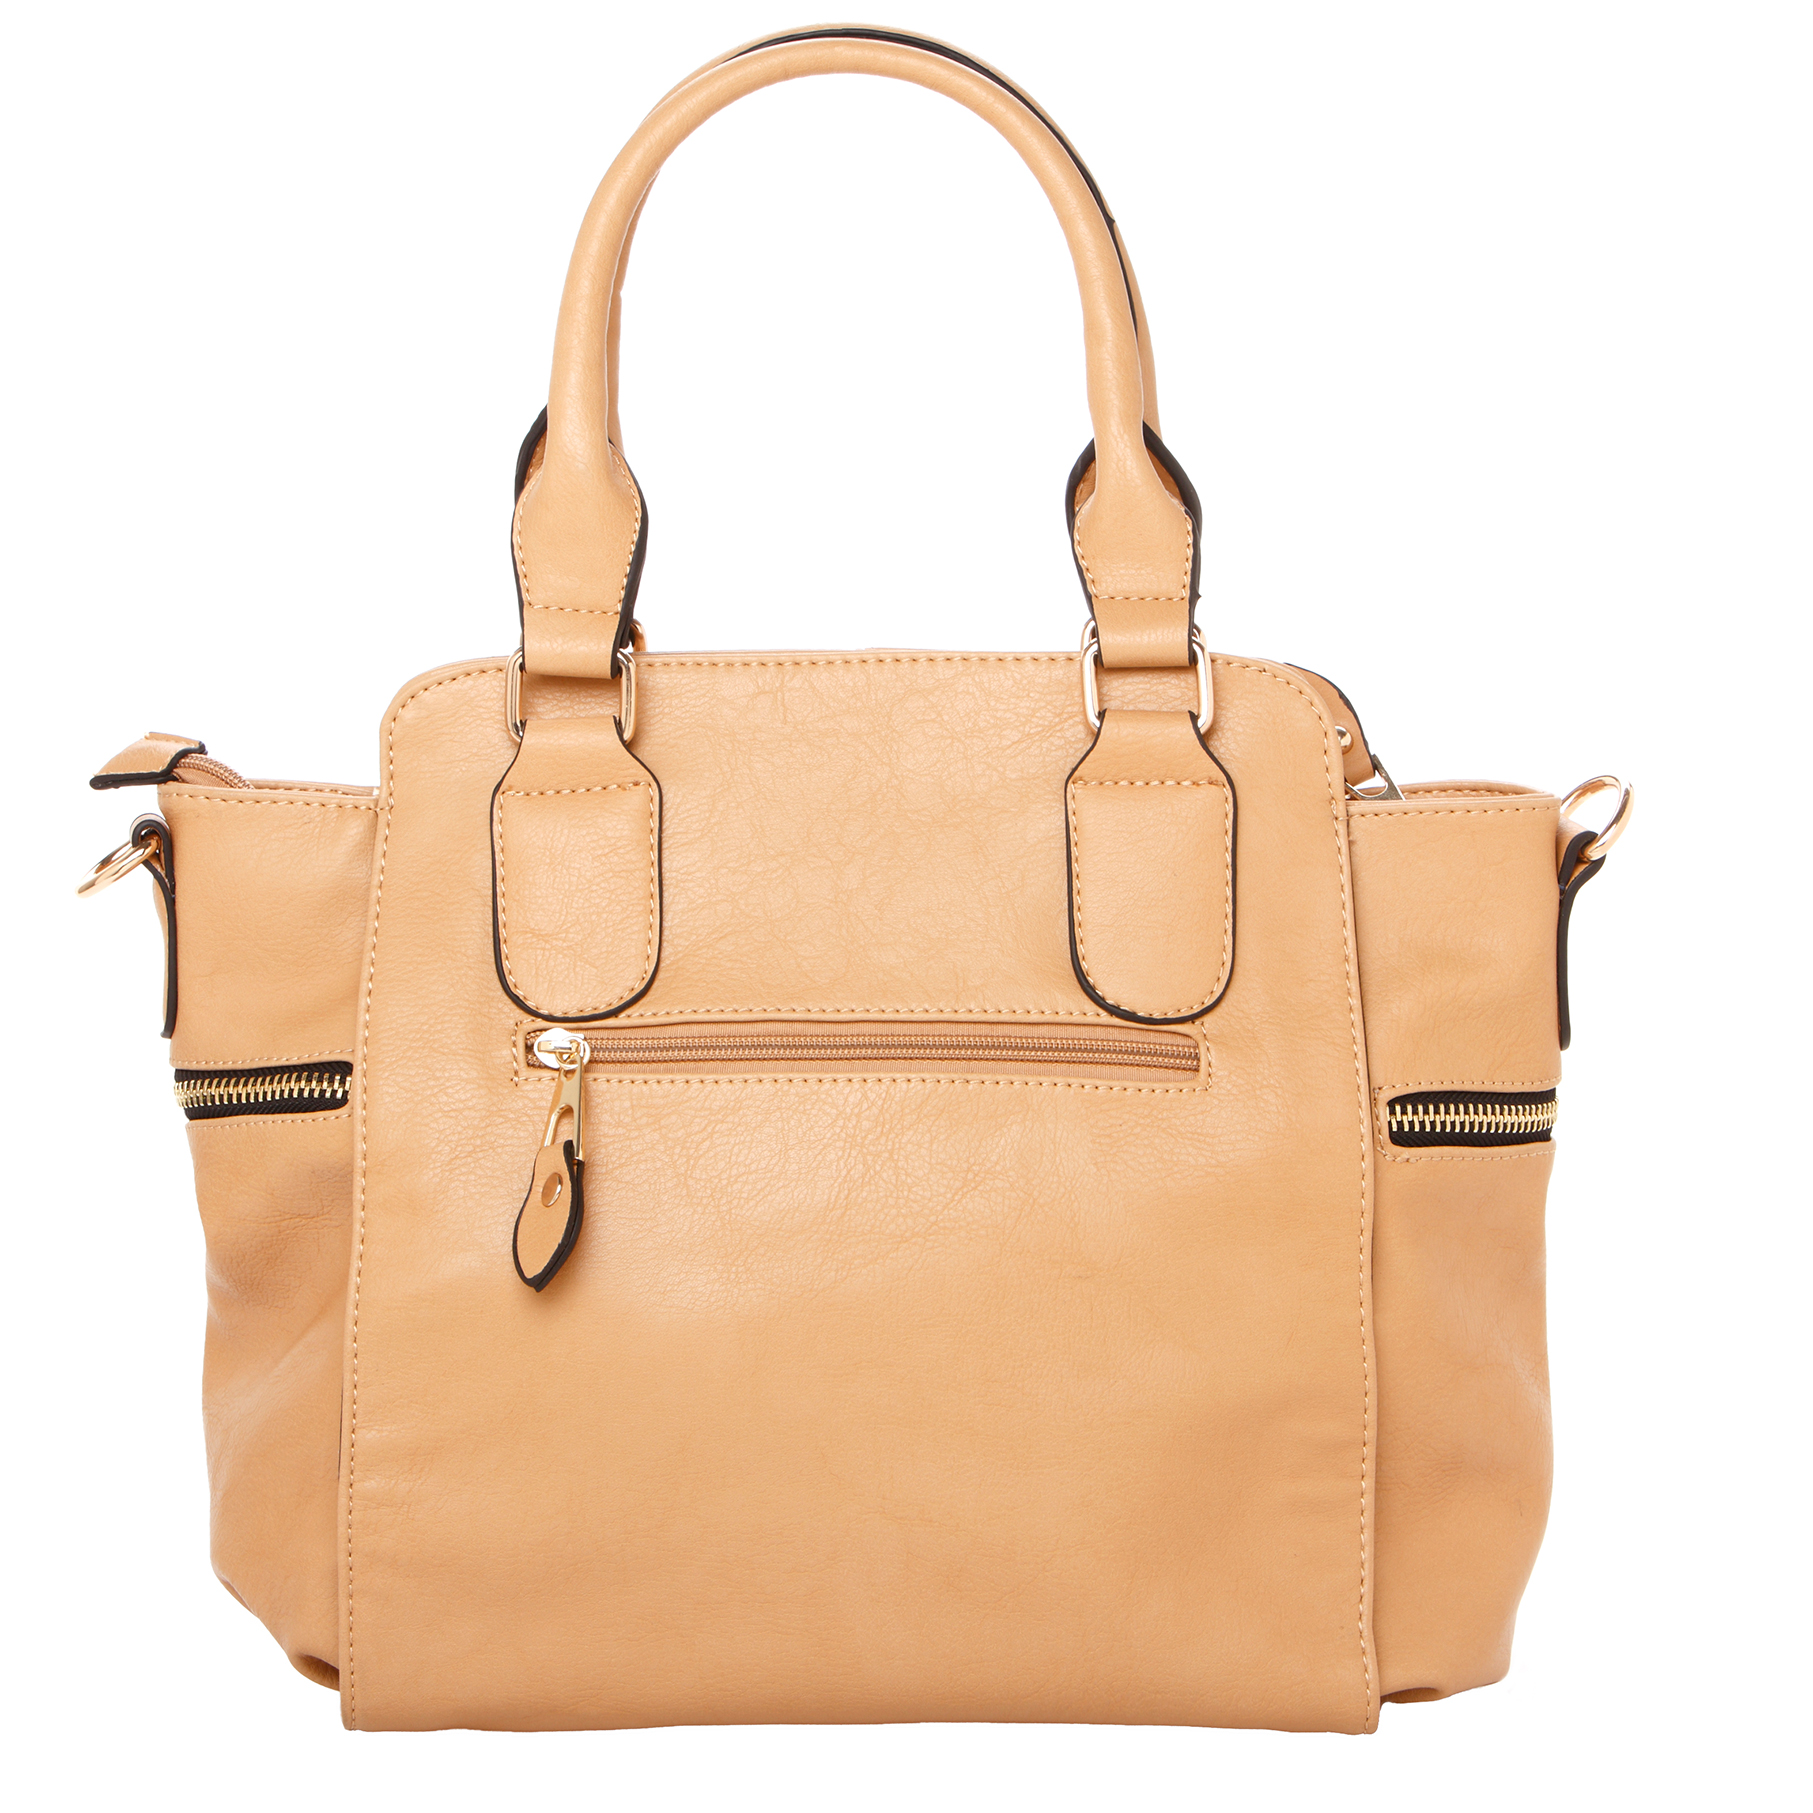 NORI Apricot Top Handle Office Tote Style Handbag back